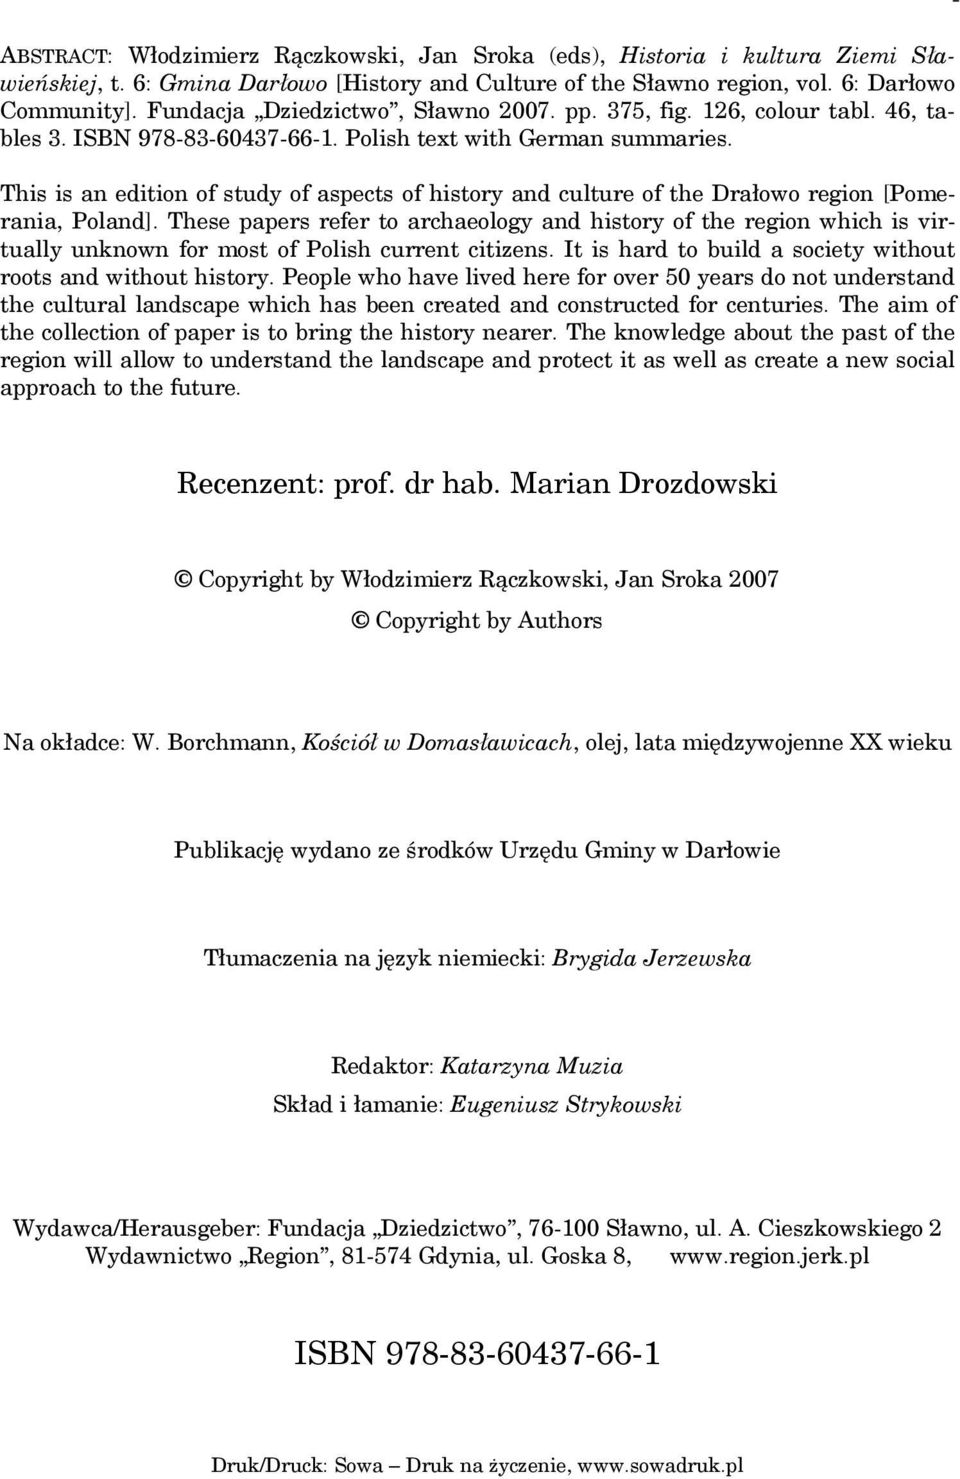 This is an edition of study of aspects of history and culture of the Drałowo region [Pomerania, Poland].